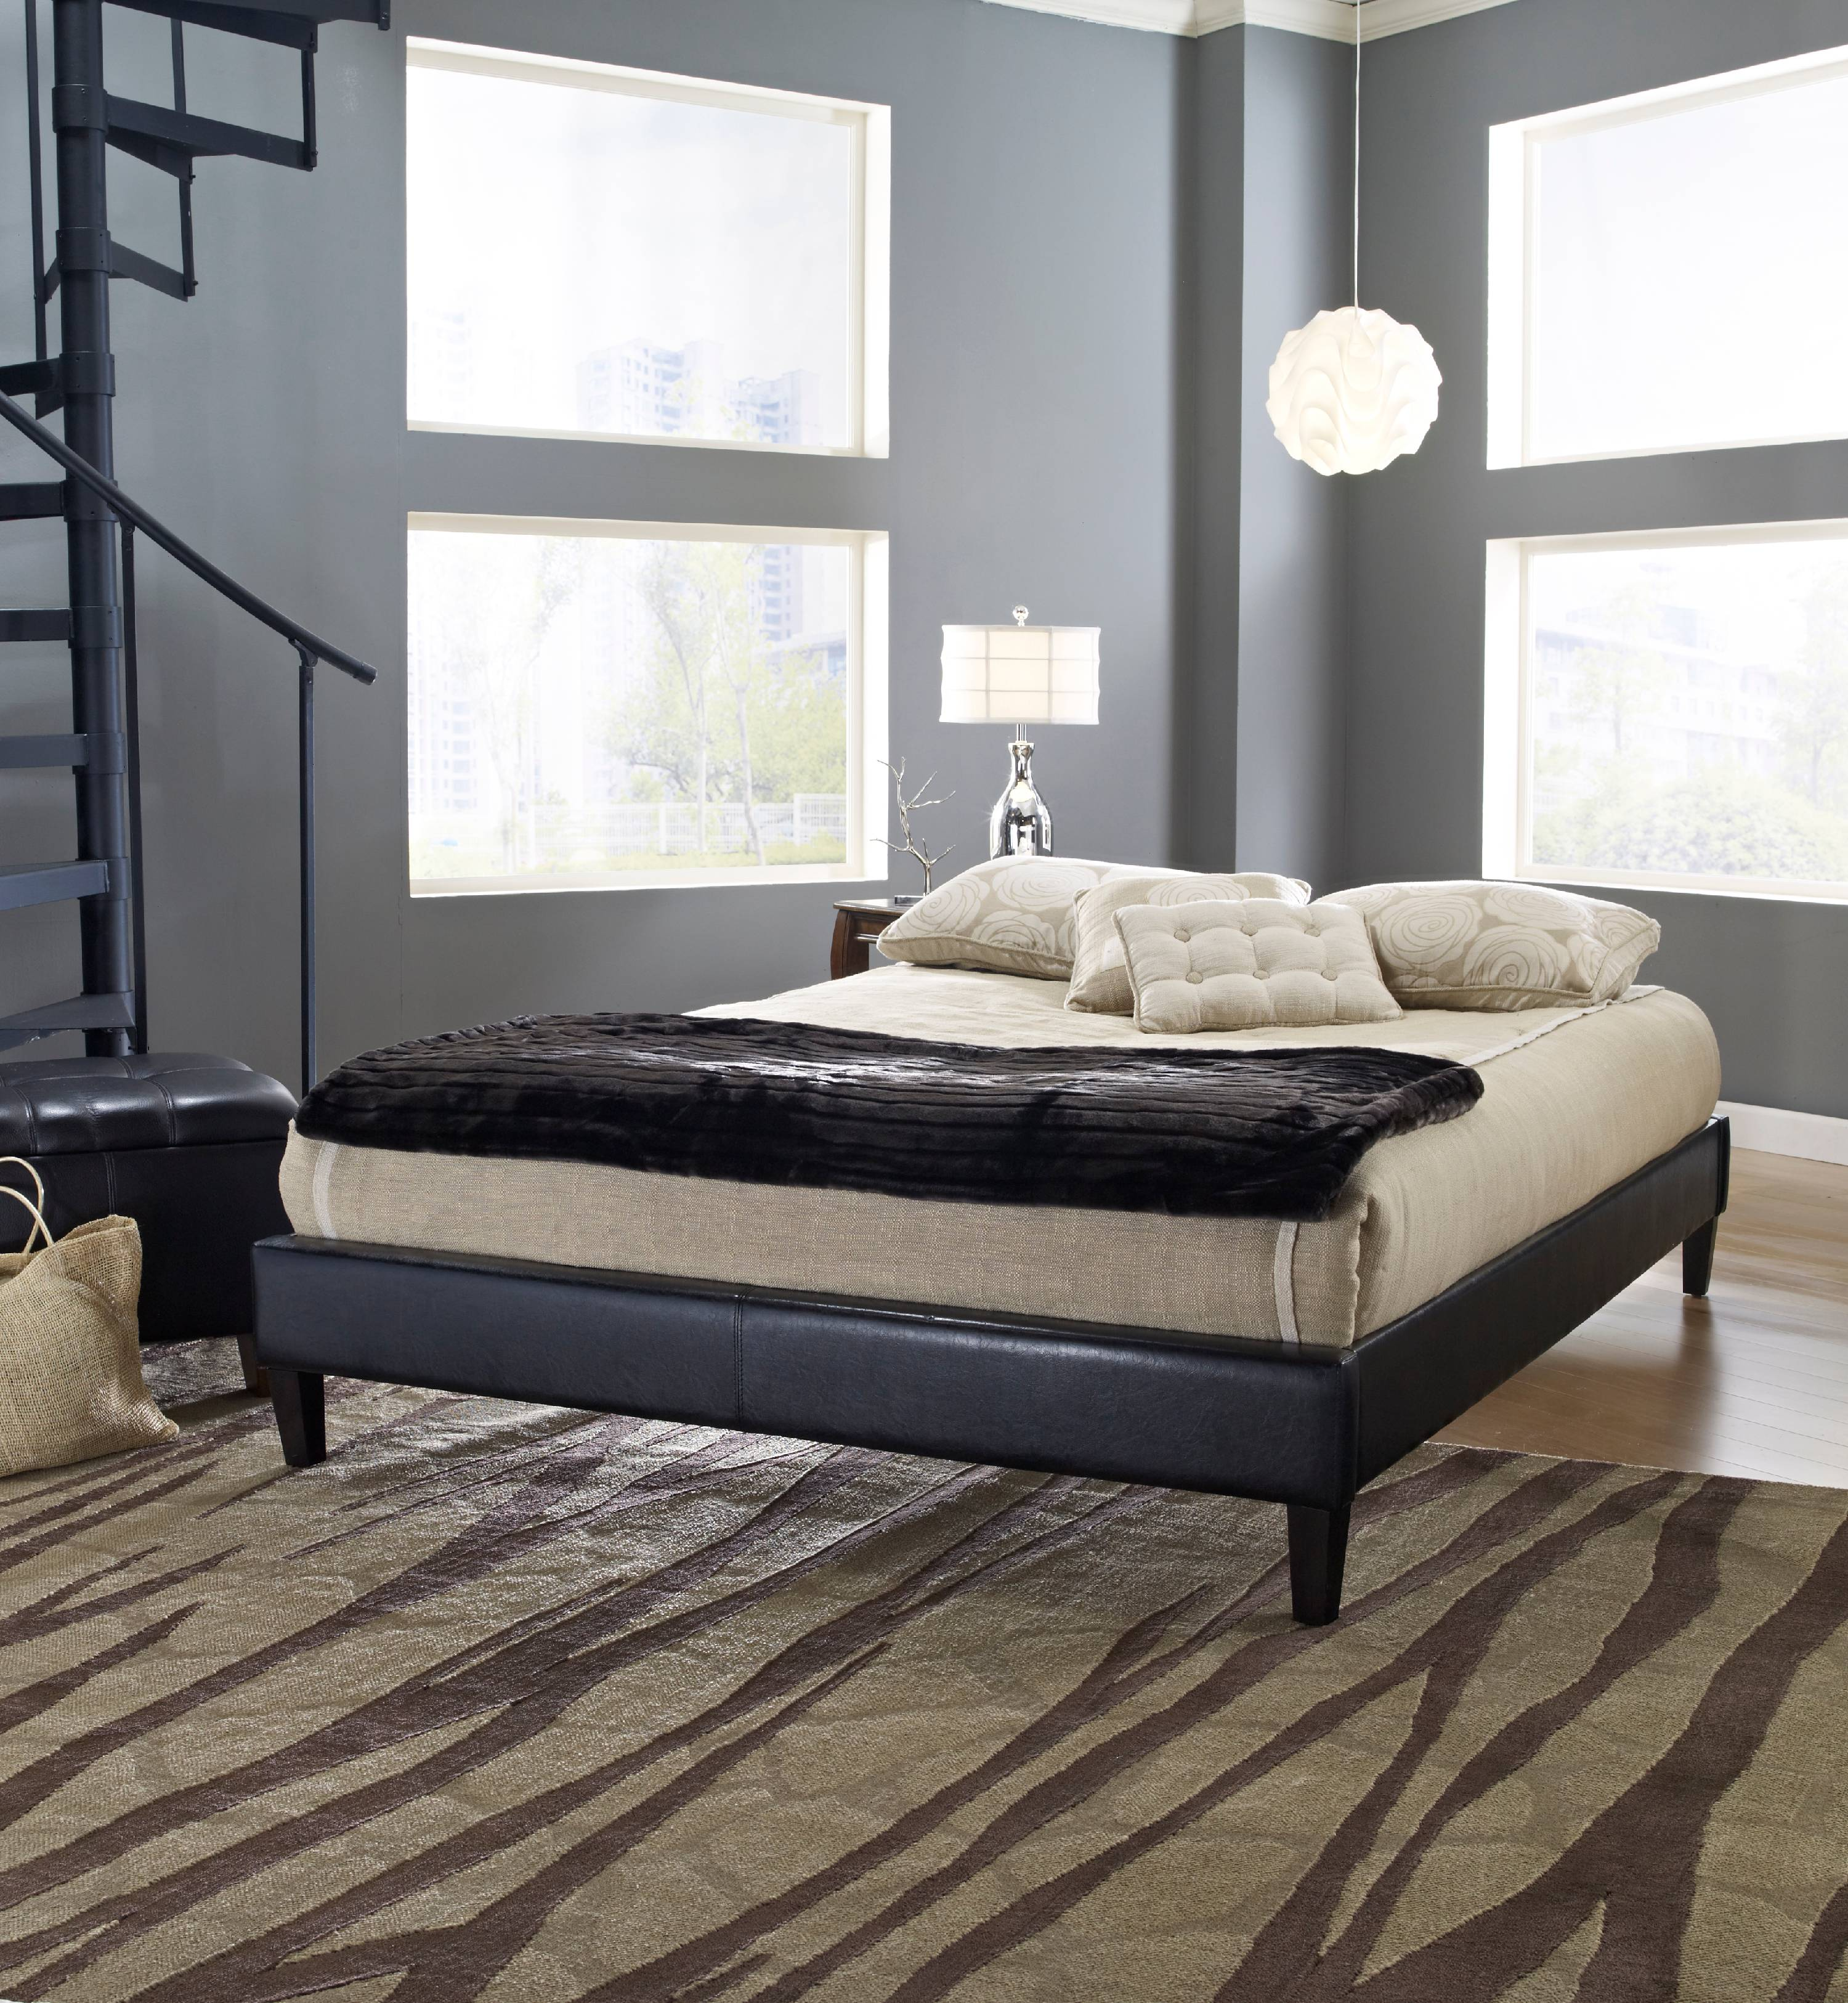 Premier Elite II Upholstered Faux Leather Platform Bed Frame with Bonus Base Wooden Slat System, Multiple Colors & Sizes